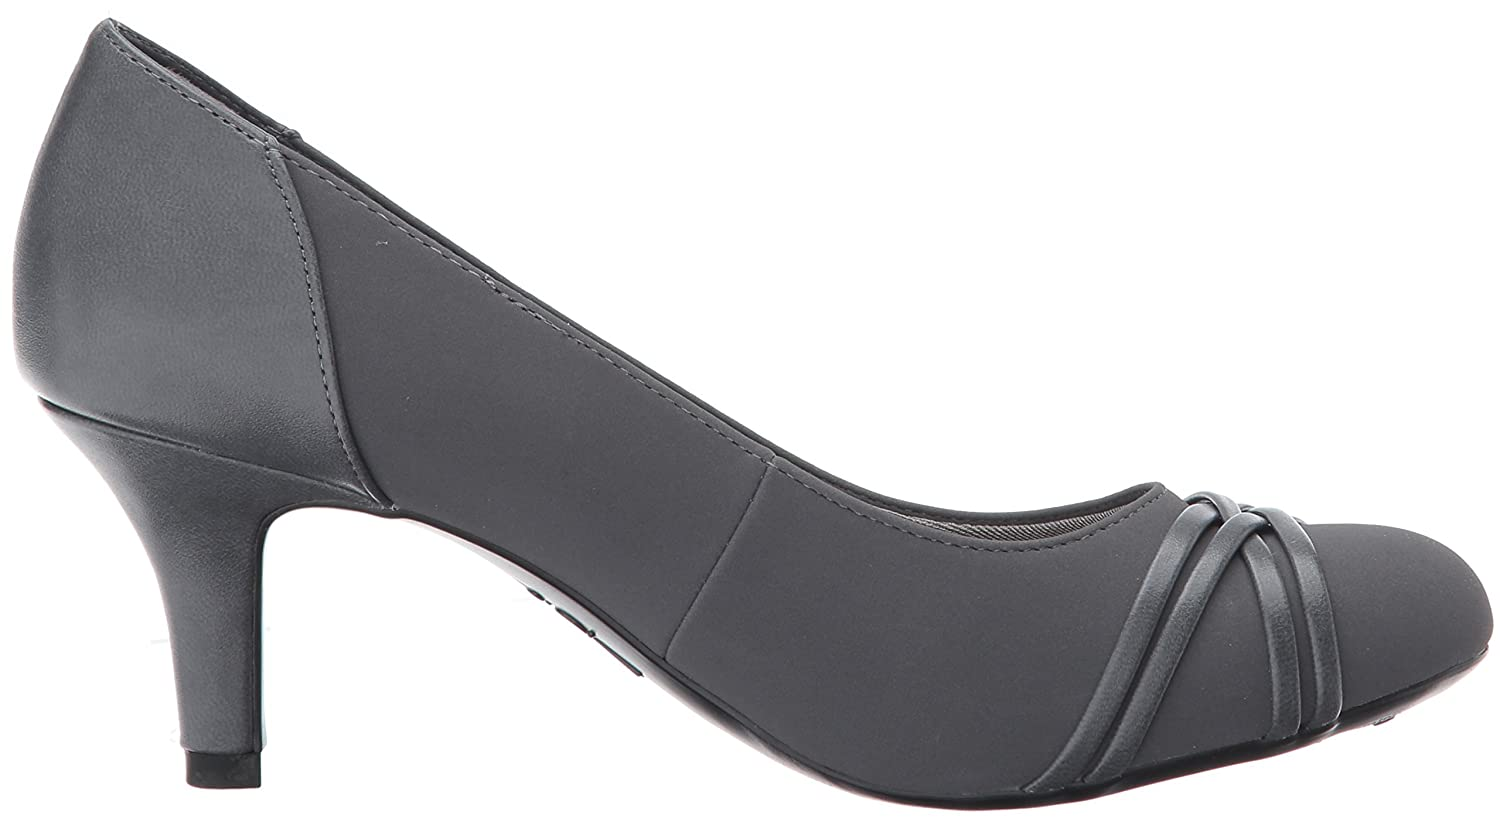 LifeStride B073269275 Women's Pascal Dress Pump B073269275 LifeStride 9 W US|Tornado b5a4ef